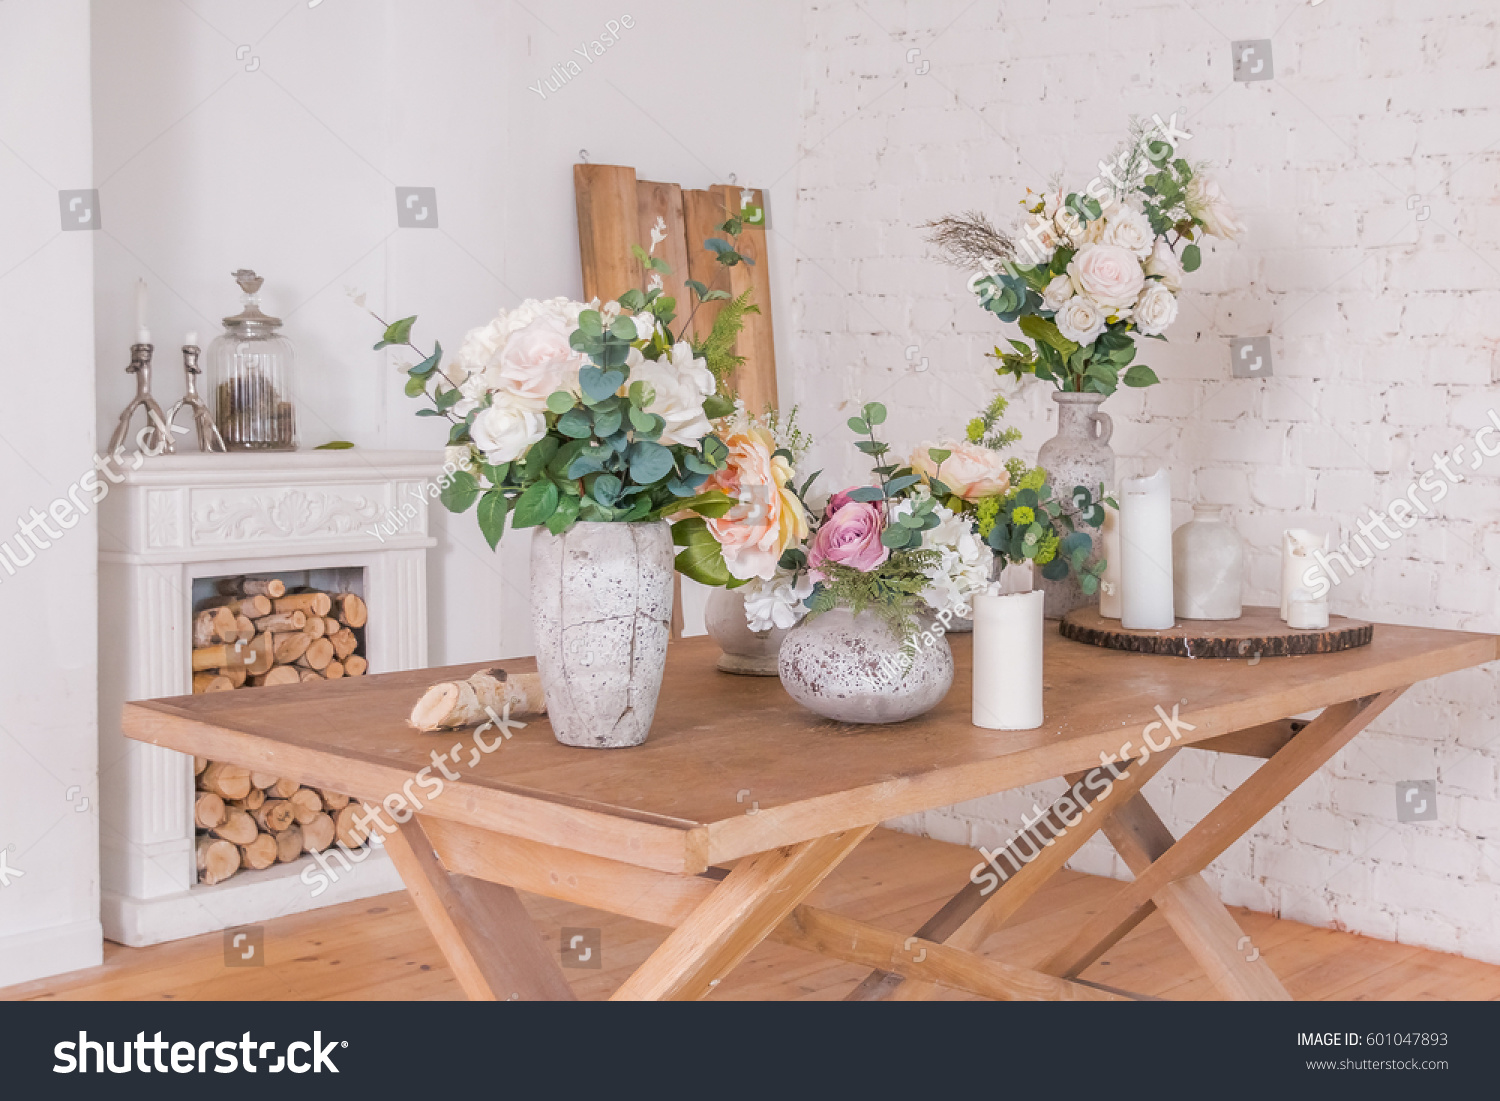 Flowers decoration shop different vases spring stock photo flowers decoration shop different vases with spring sommer flowers on the wooden table fireplace junglespirit Gallery